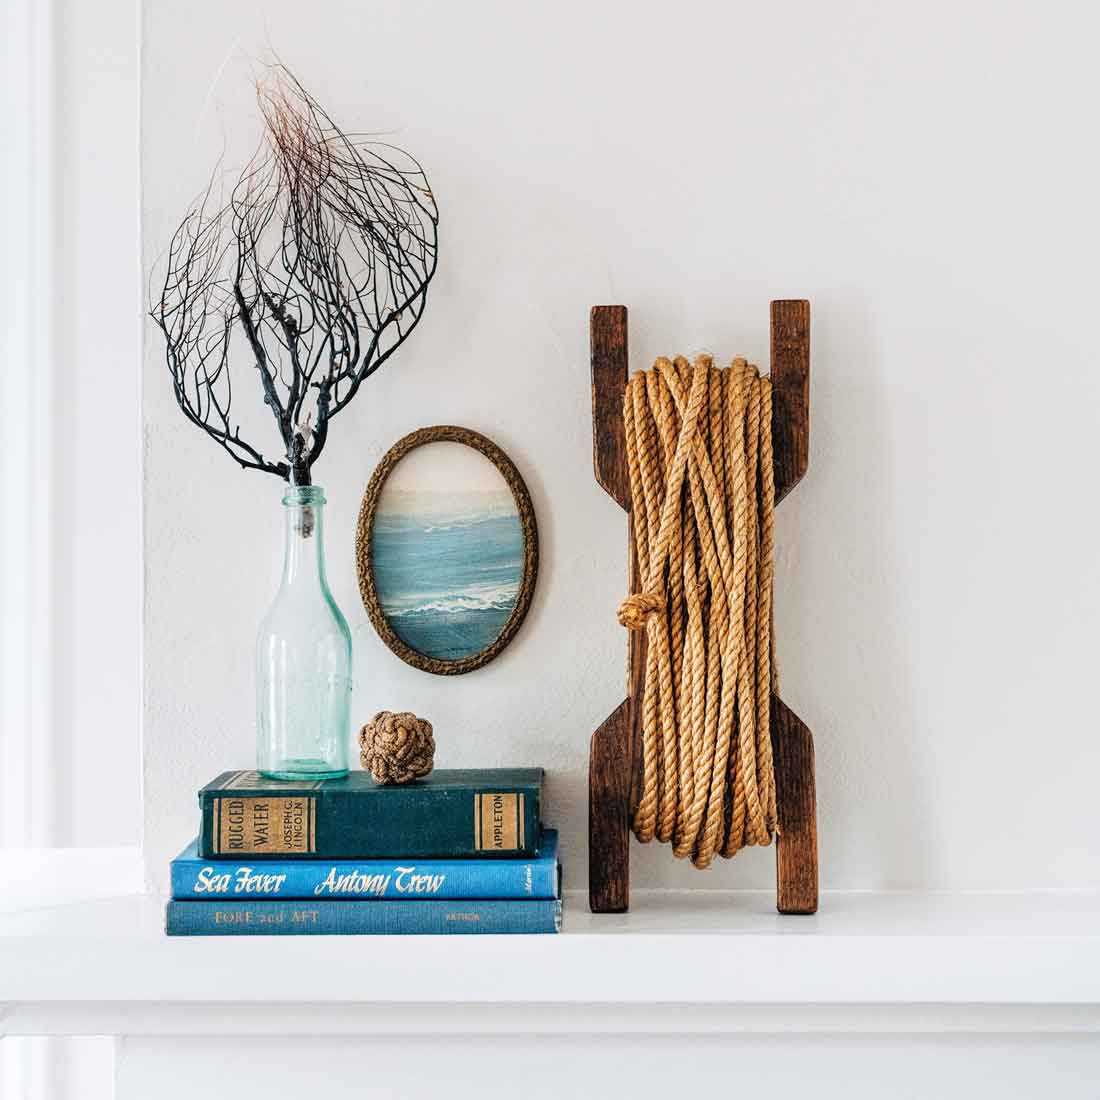 Reimagine a damaged flea market painting by displaying a snippet in an oval frame. An old hand-line fishing reel, a bottle on a vintage-book perch, and an eBay sea fan follow the frame's curves.